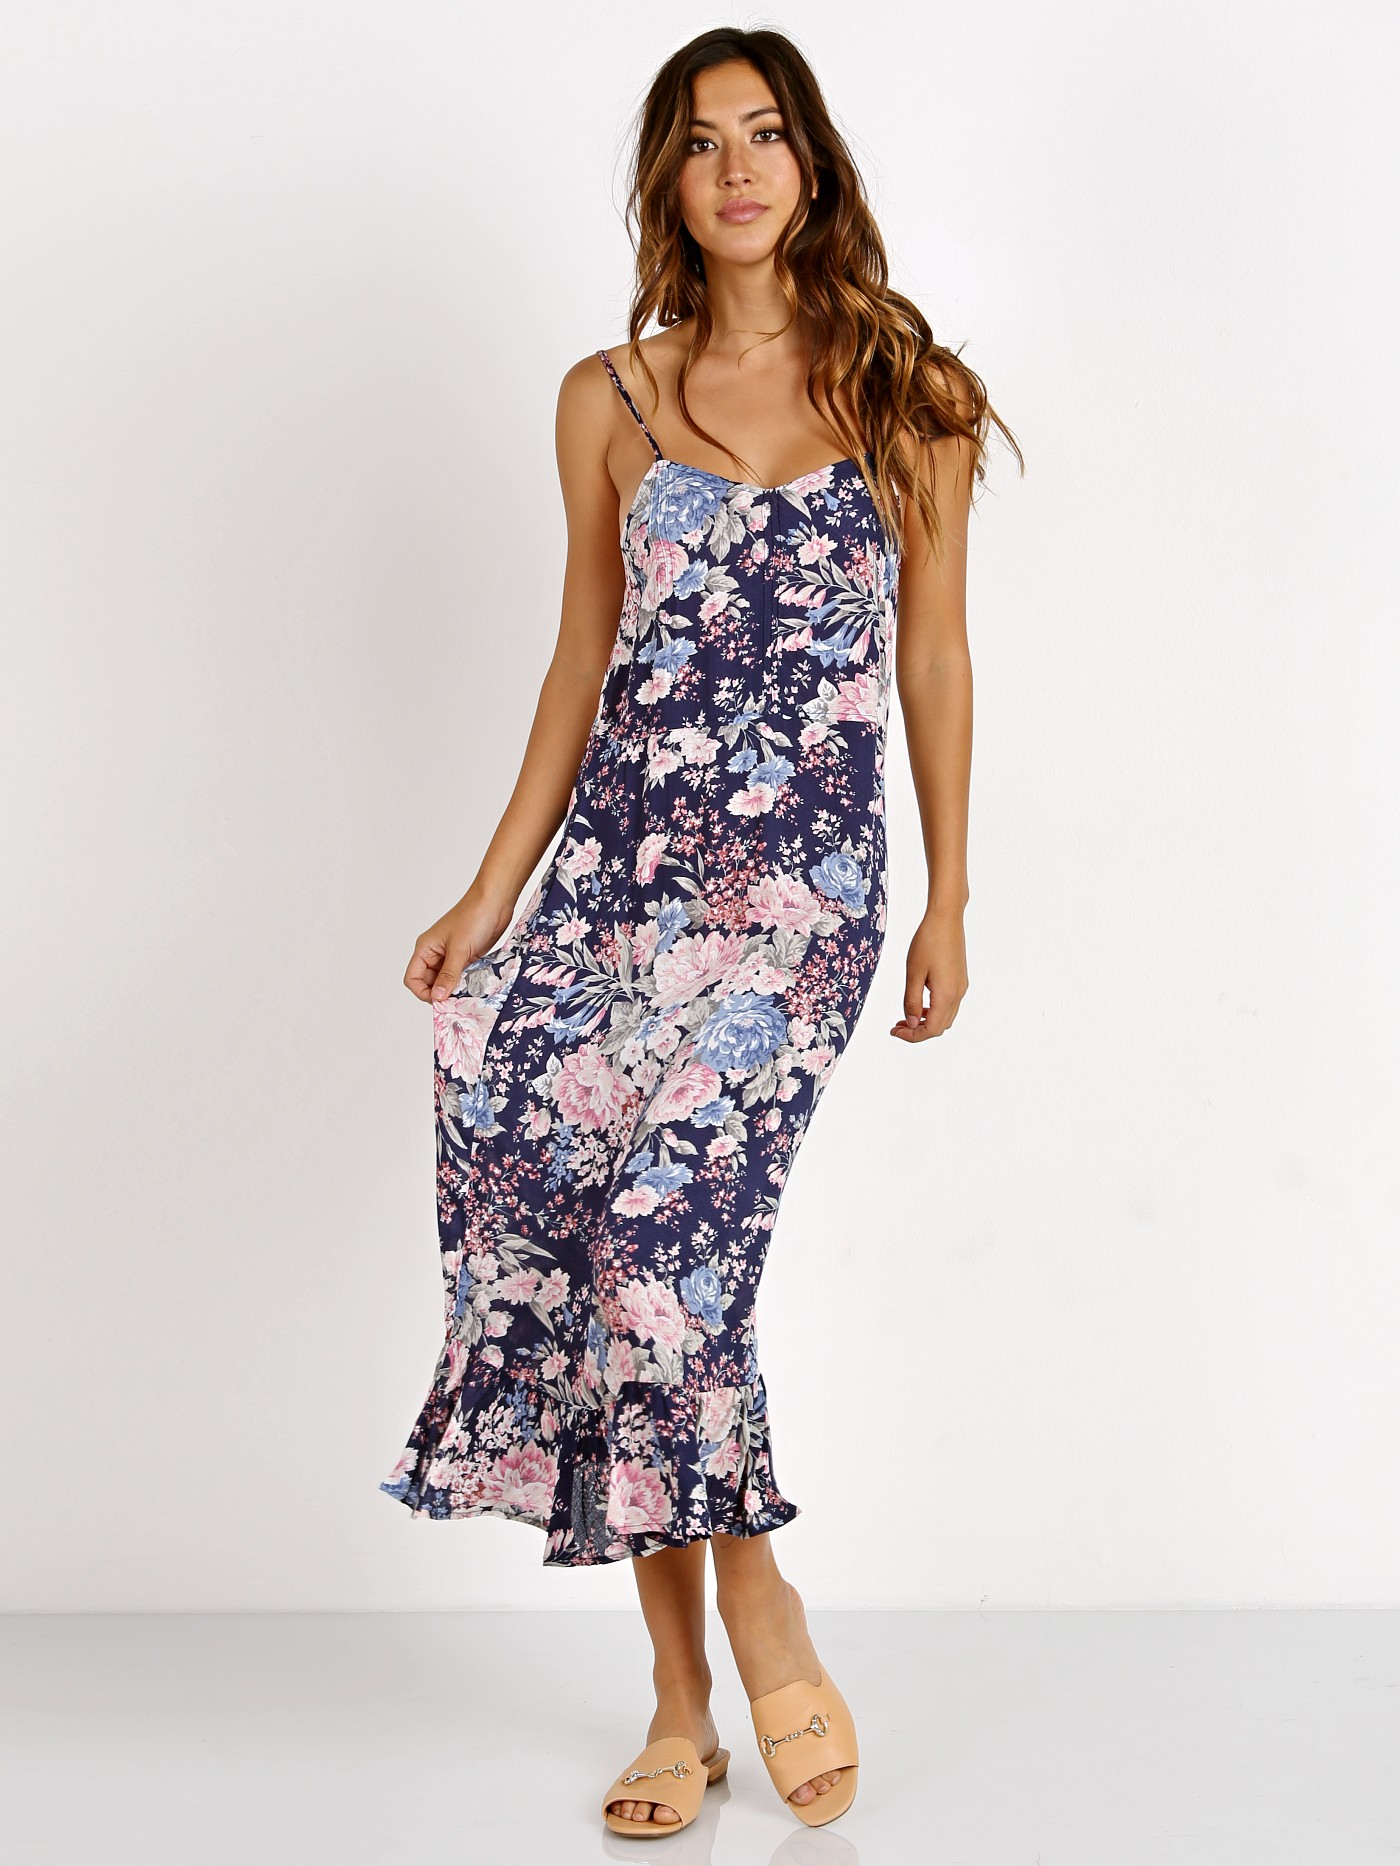 bb36cb73d24d Auguste Alice Slip Dress Francis Floral Navy Blue AMH1-17215-NB - Free  Shipping at Largo Drive